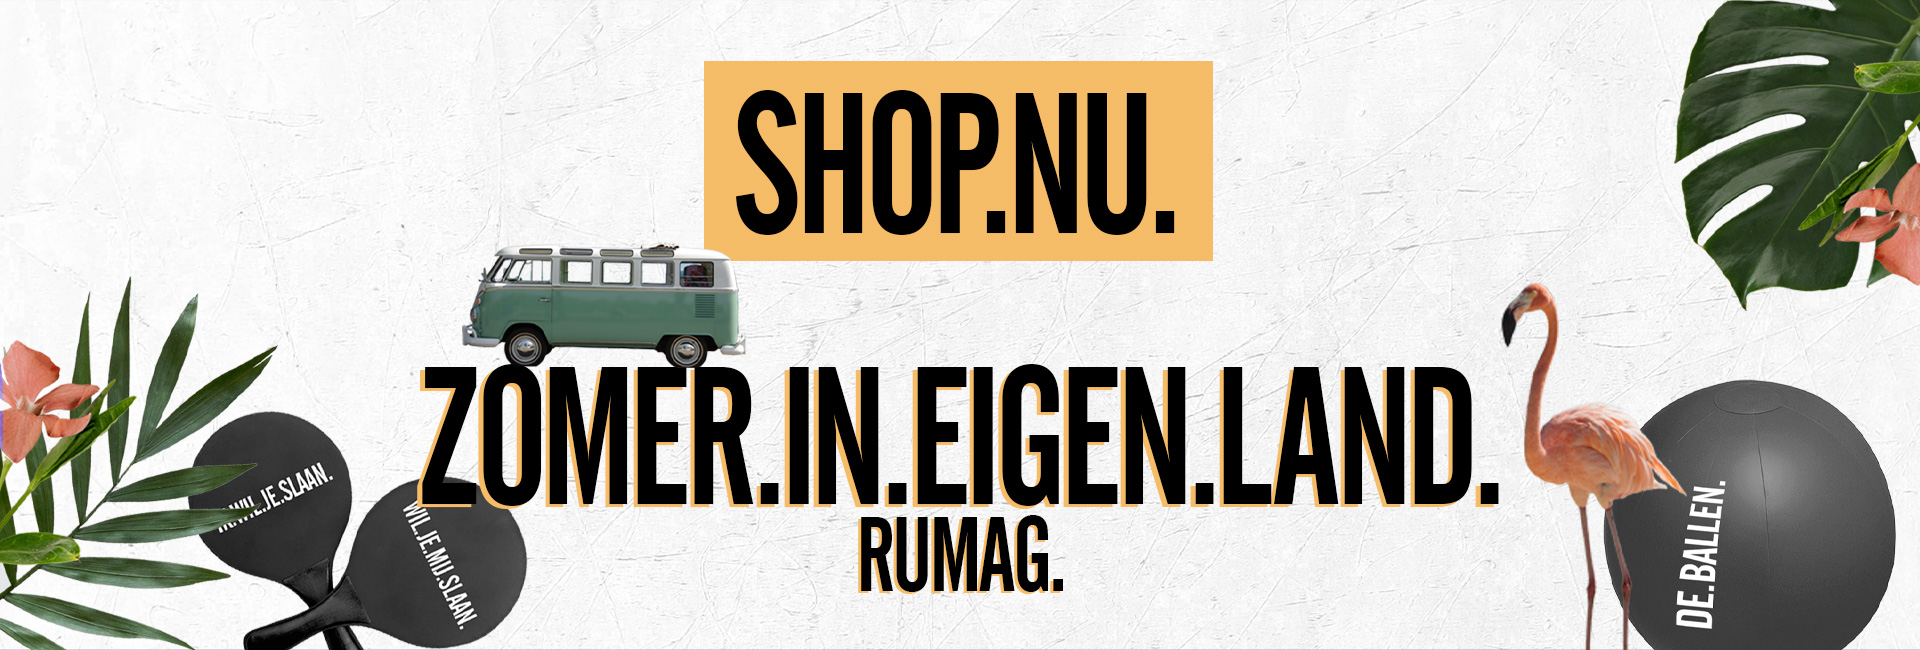 Zomer in eigen land home header